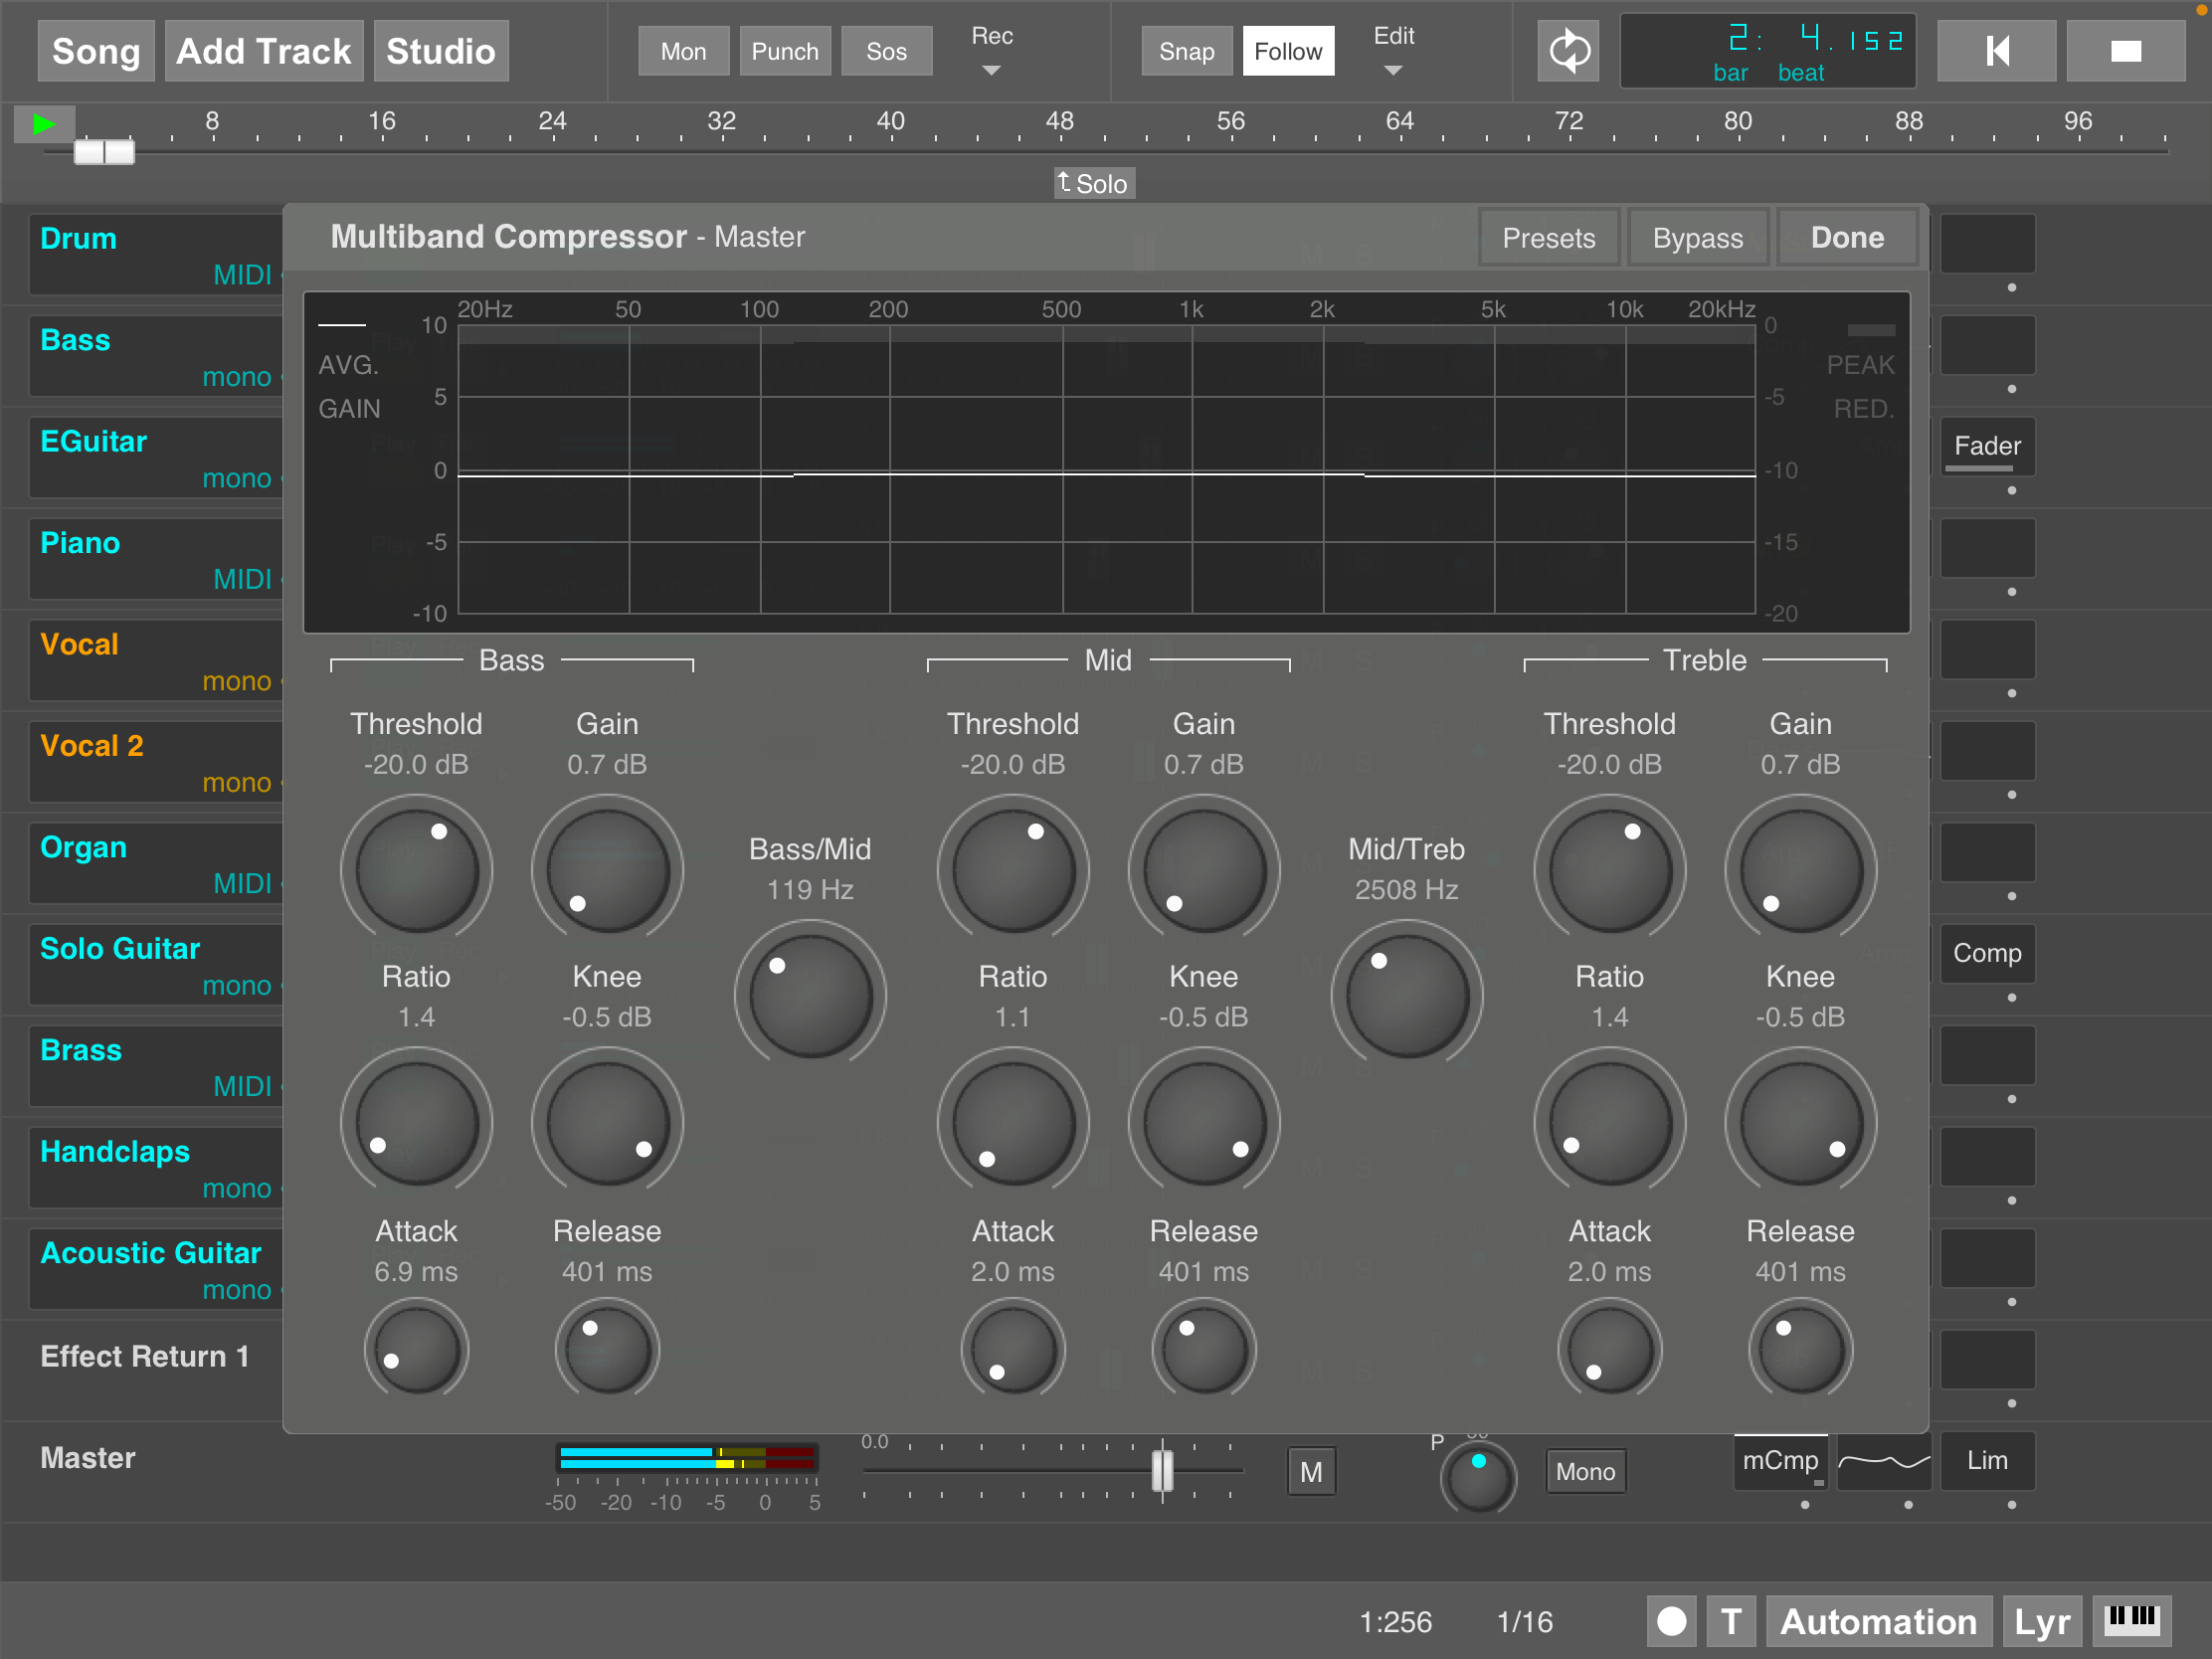 MultitrackStudio for iPad - Multiband Compressor effect